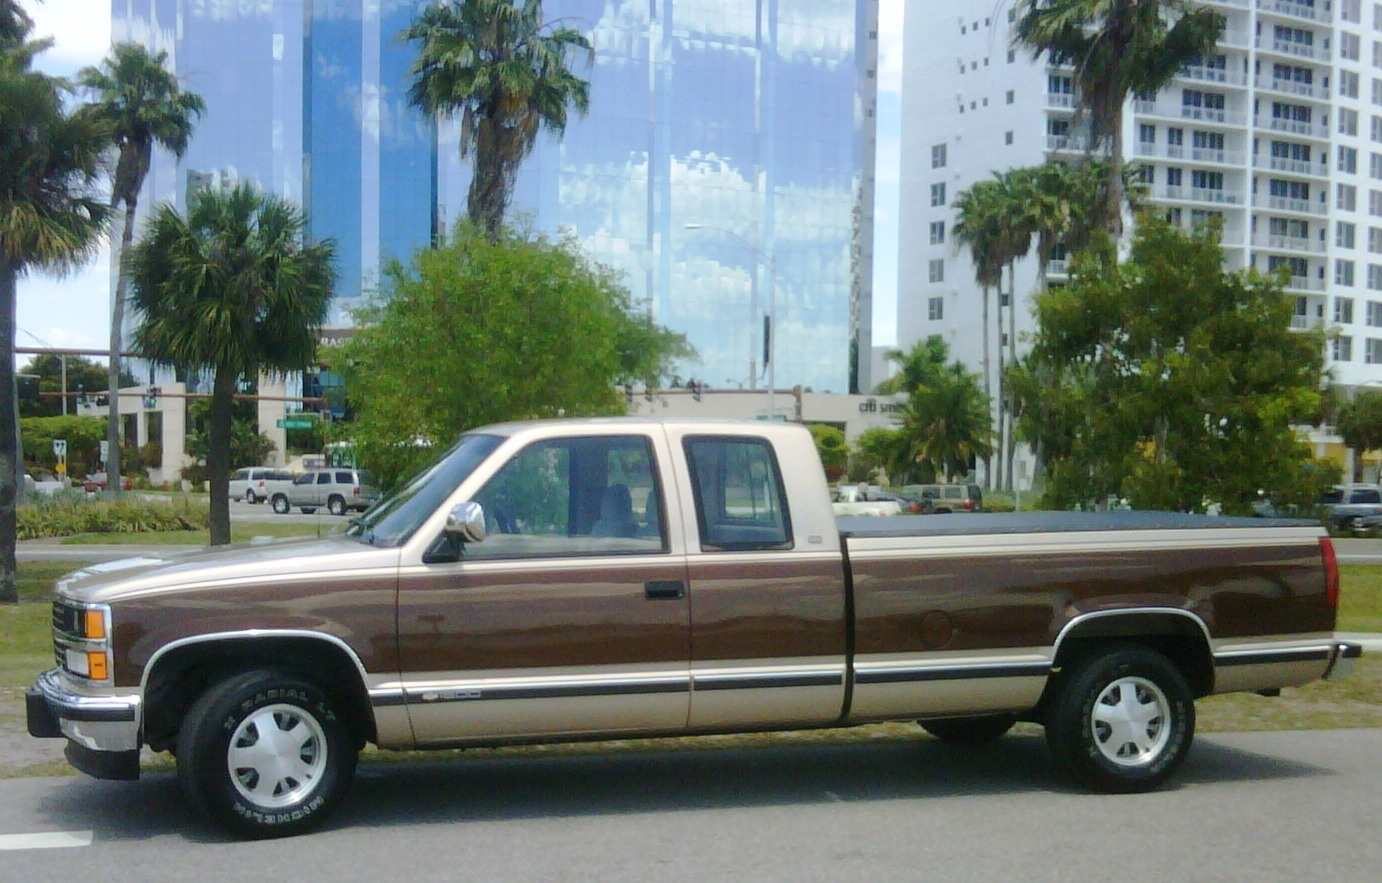 All Chevy 1995 chevy c1500 : Chevrolet C/K 1500 Questions - It would be interesting how many ...